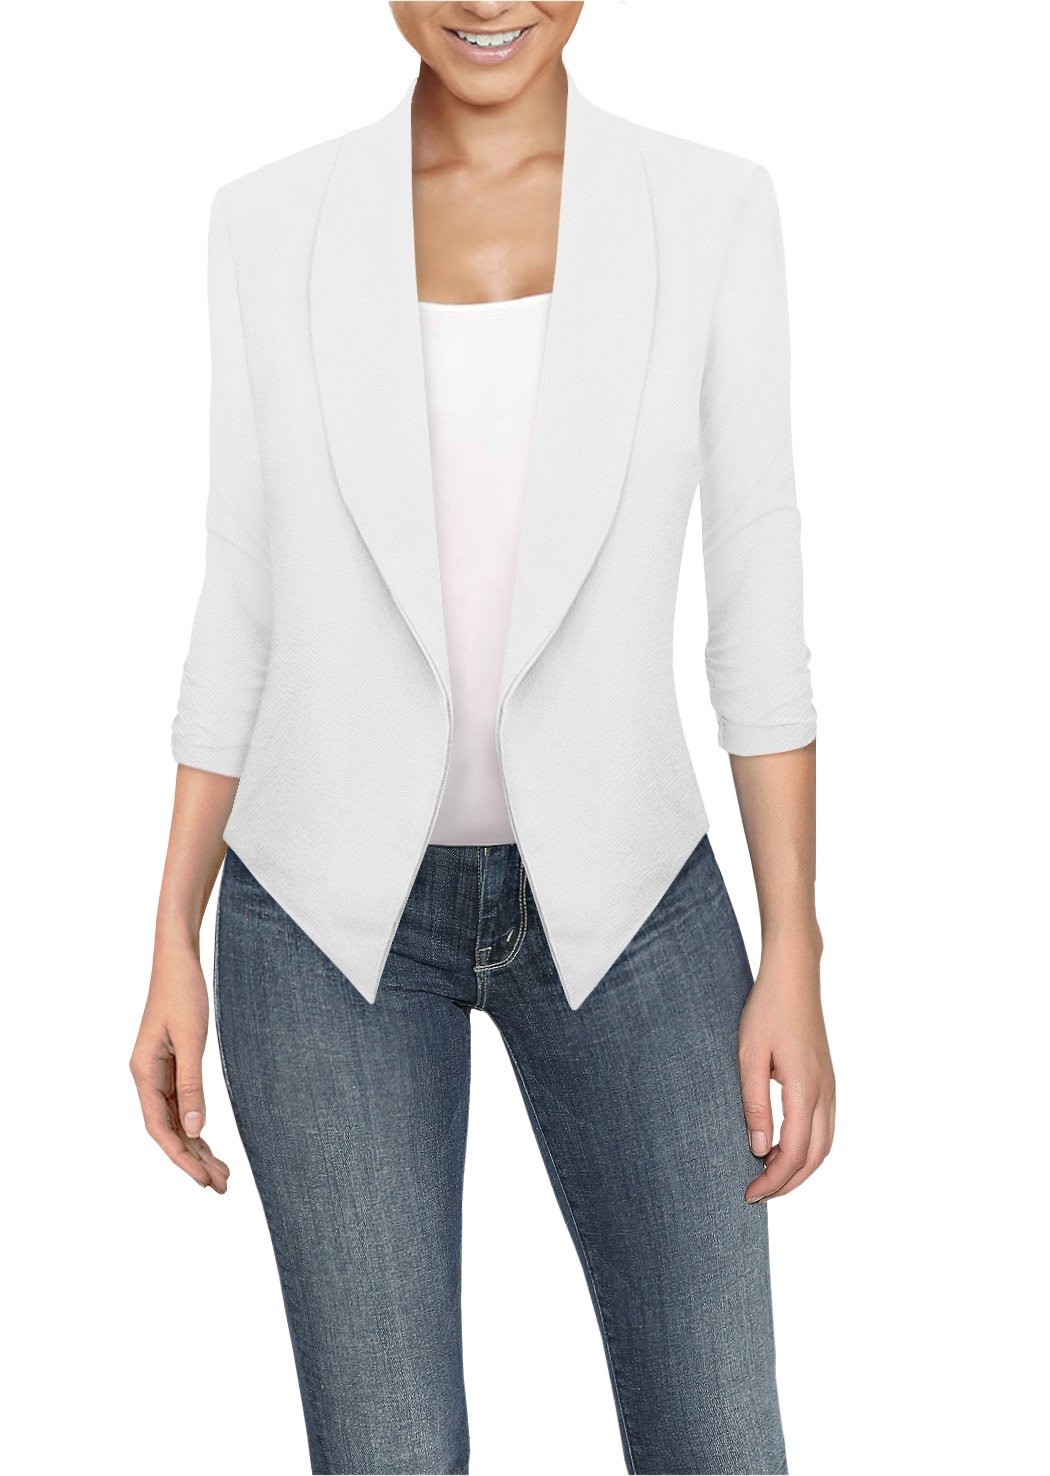 HyBrid & Company Womens Casual Work Office Open Front Blazer JK1133 White M